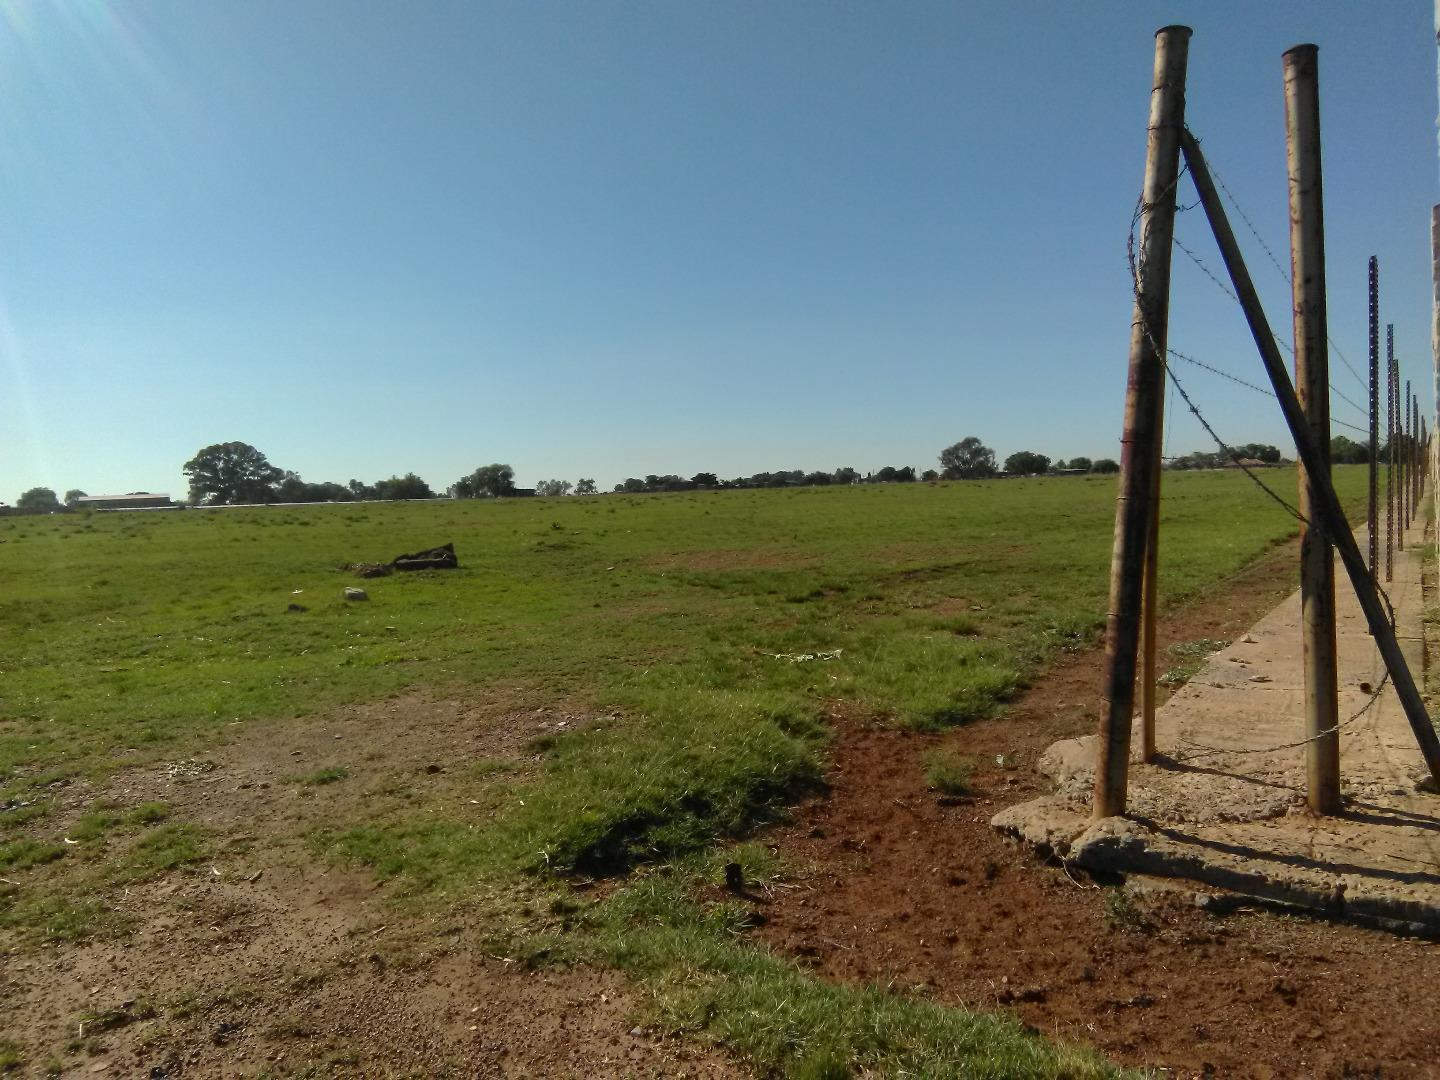 Vacant Land for Sale in Boltonwold, Meyerton - Gauteng